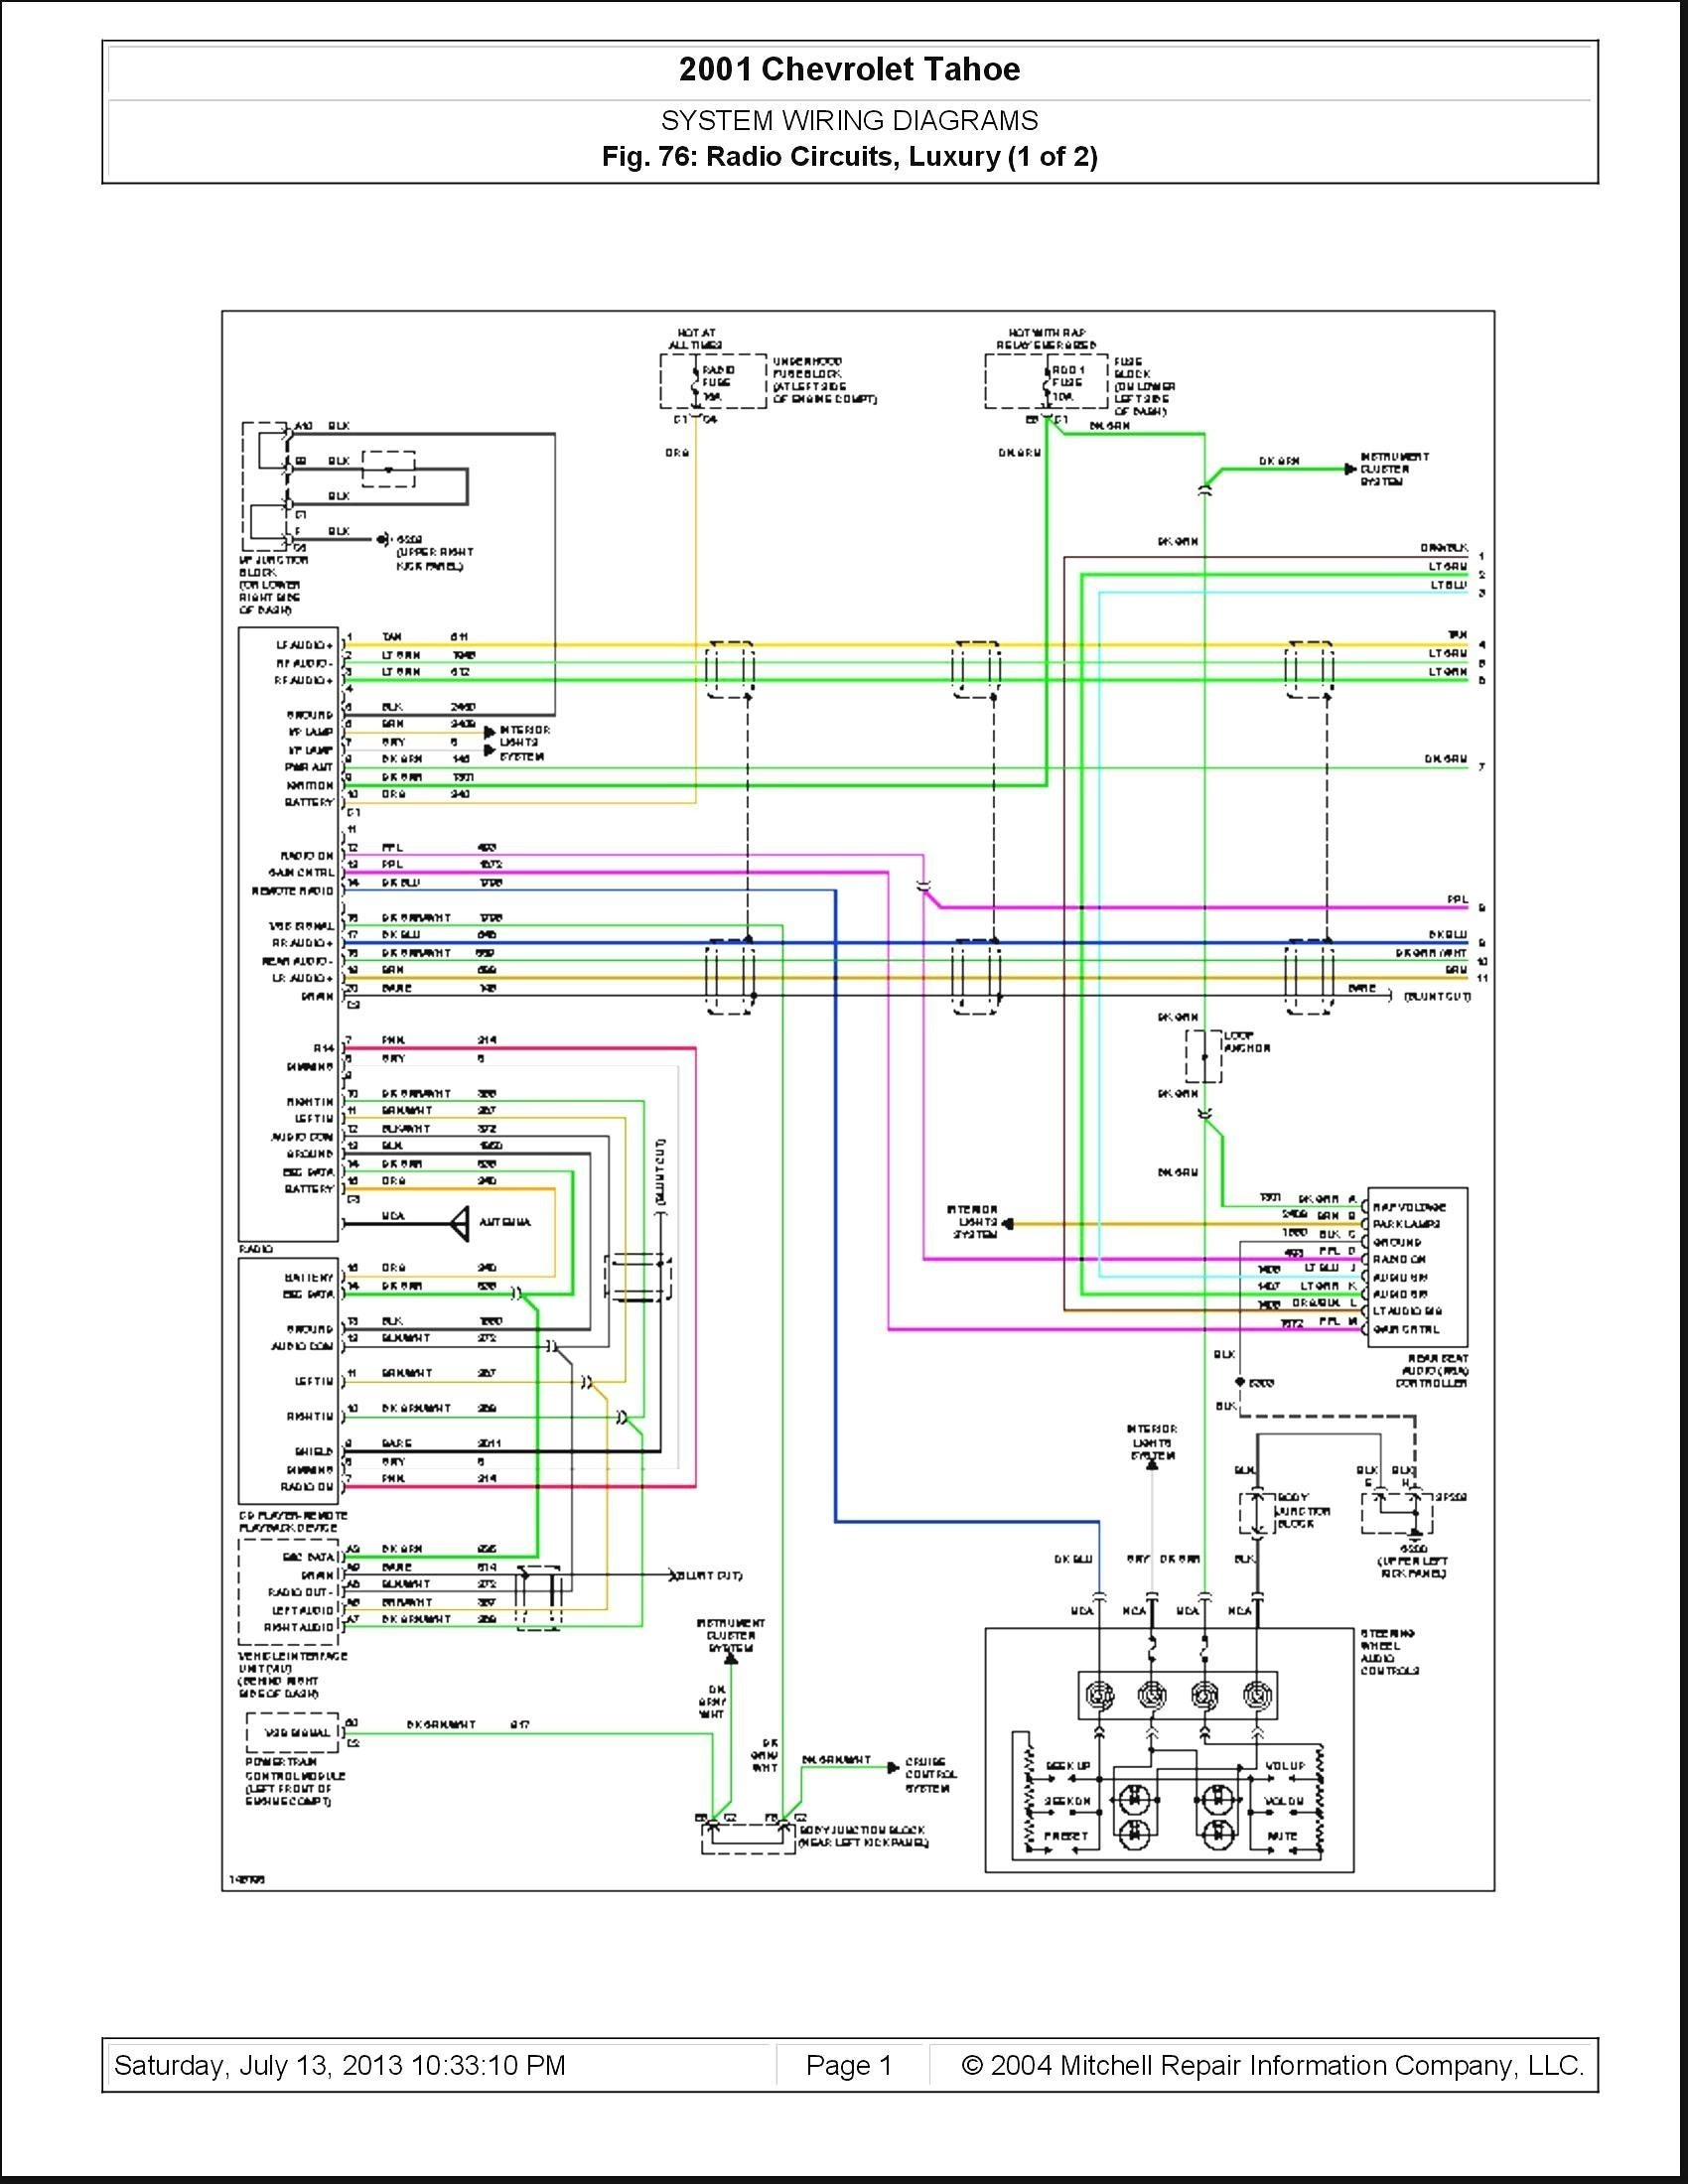 TX_5937] Kia Sportage Wiring Diagram Kia Car Radio Stereo Audio Wiring On  2004 Download Diagram